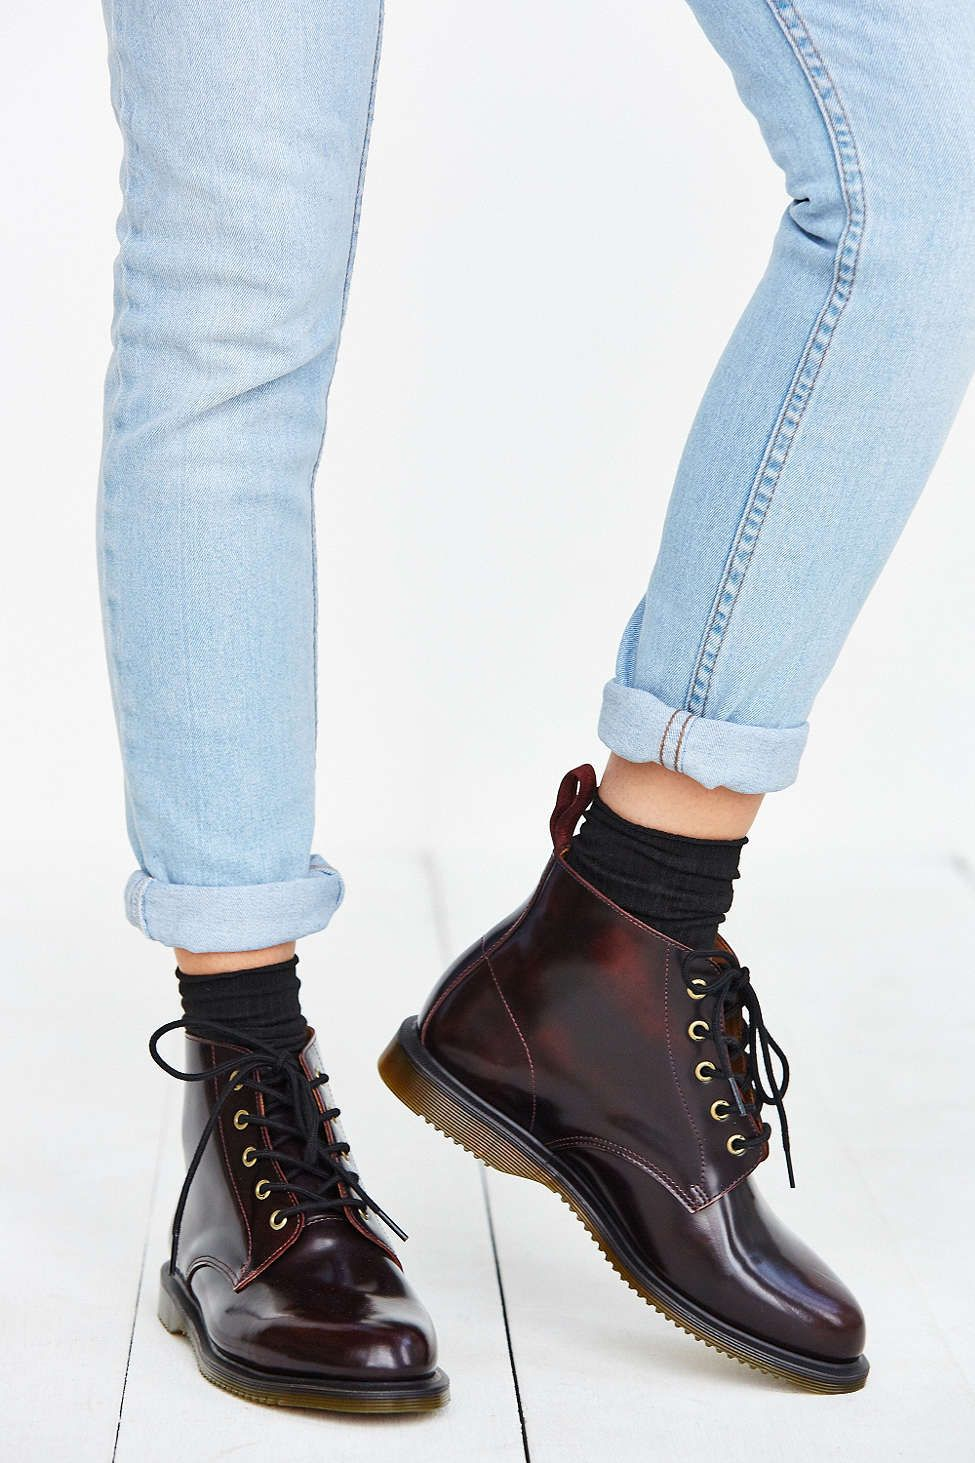 DR MARTENS 1460 WOMEN'S ARCADIA LEATHER LACE UP BOOTS